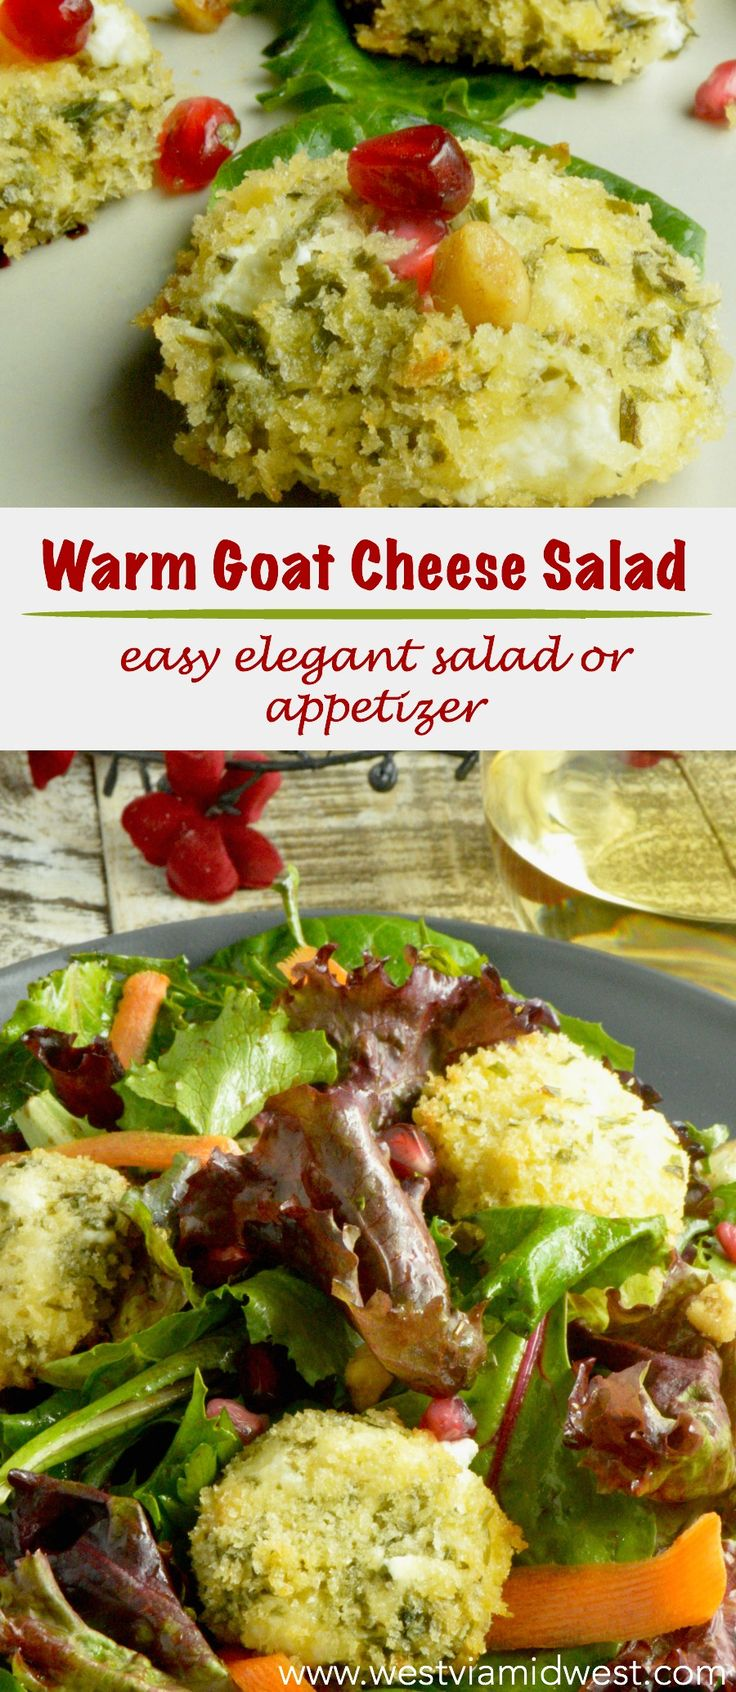 Warm Goat Cheese Salad is an easy elegant offering for any entertaining.  Baked Crispy Panko crust surrounds a tangy, herb coated cheese over simple salad greens.  A perennial favorite your guests will ask for again and again! #appetizers #salad www.westviamidwest.com #christmas #christmasrecipes #thanksgiving #thanksgivingrecipes #holidaysalad #christmas #ad #groceryoutlet via @westviamidwest